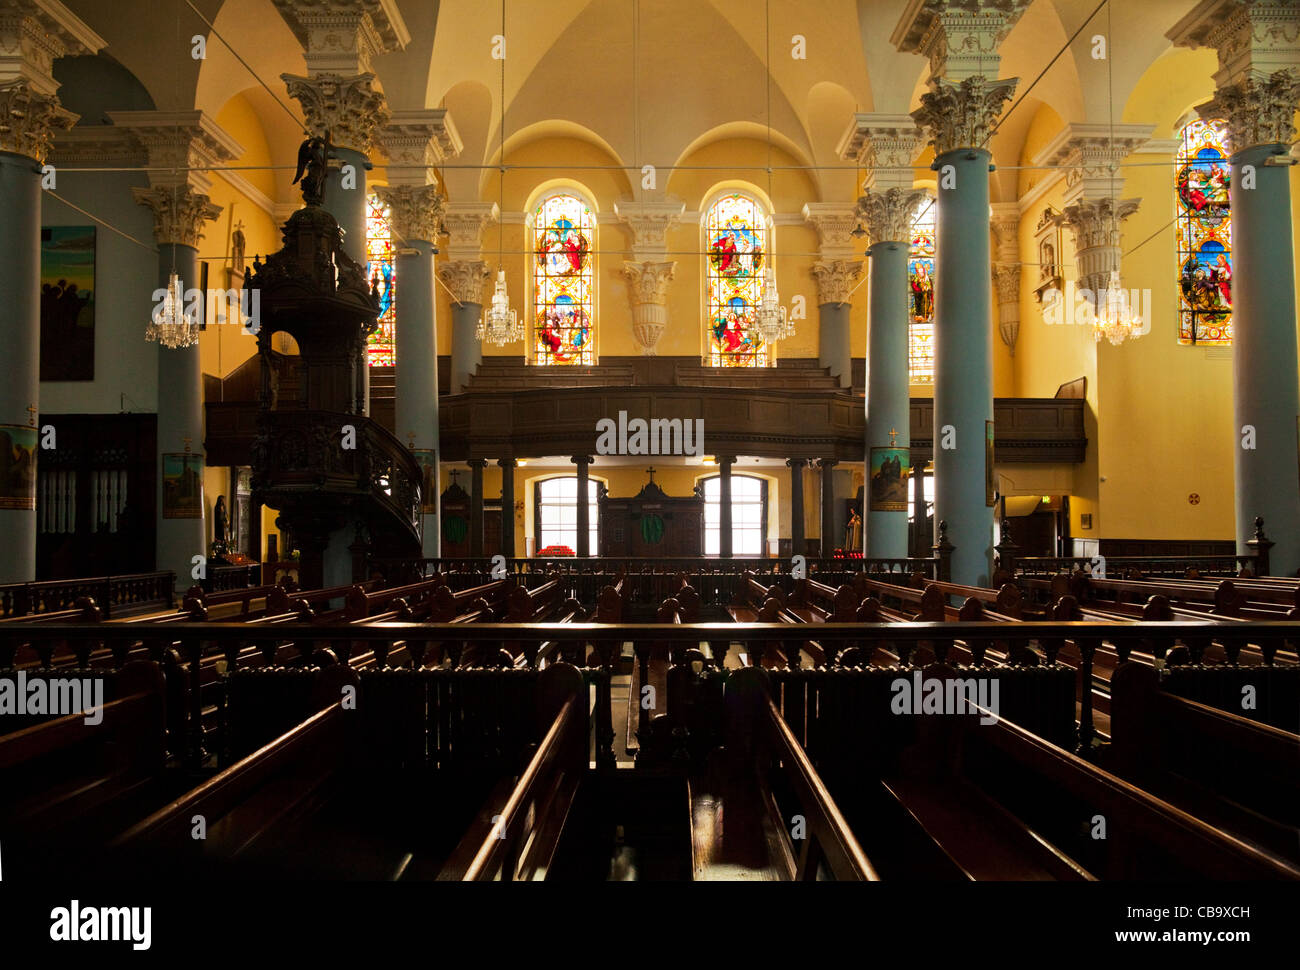 Stained Glass Windows in Holy Trinity R.C. Cathedral, Waterford City, Ireland - Stock Image